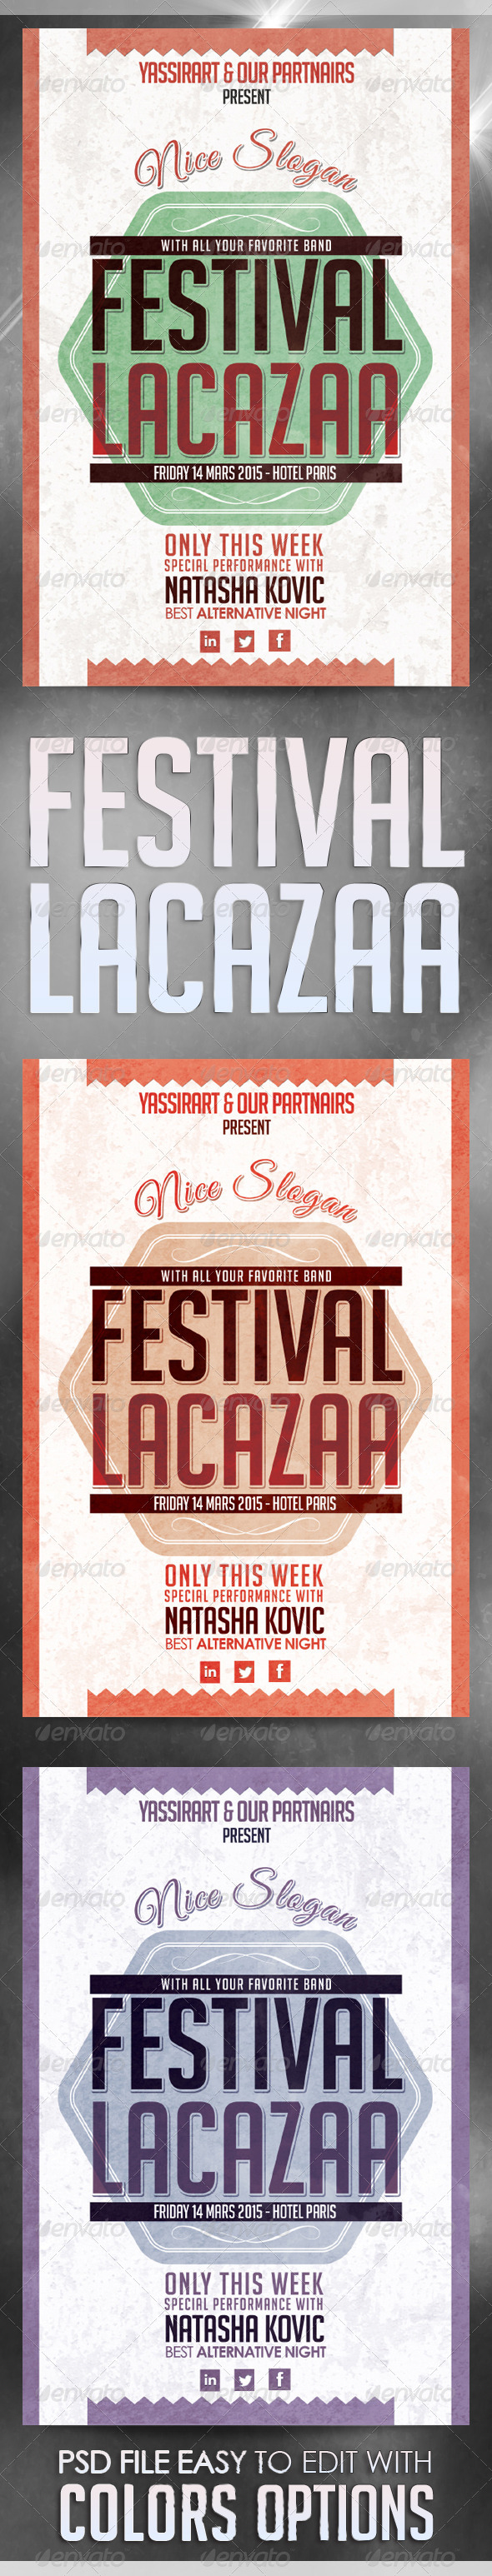 GraphicRiver Festival Lacasaa Flyer Template 7068427